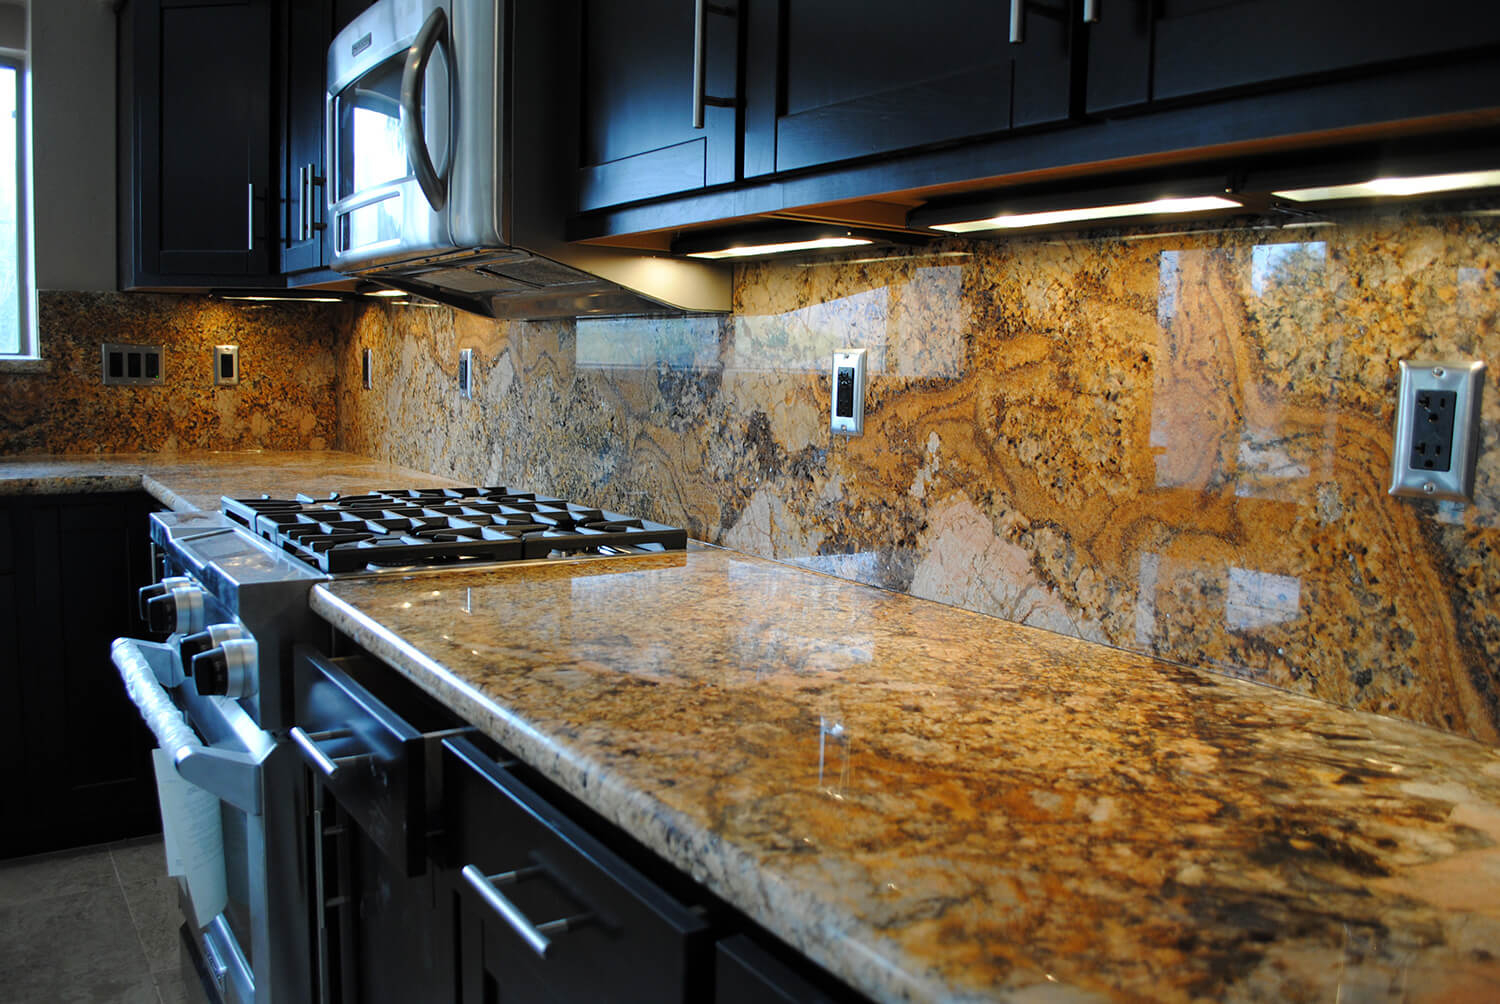 countertop houston grey wooden floor your contemporary for offers and decoration countertops stonemark awesome granite over company looks cabinet interior on quartz brown white